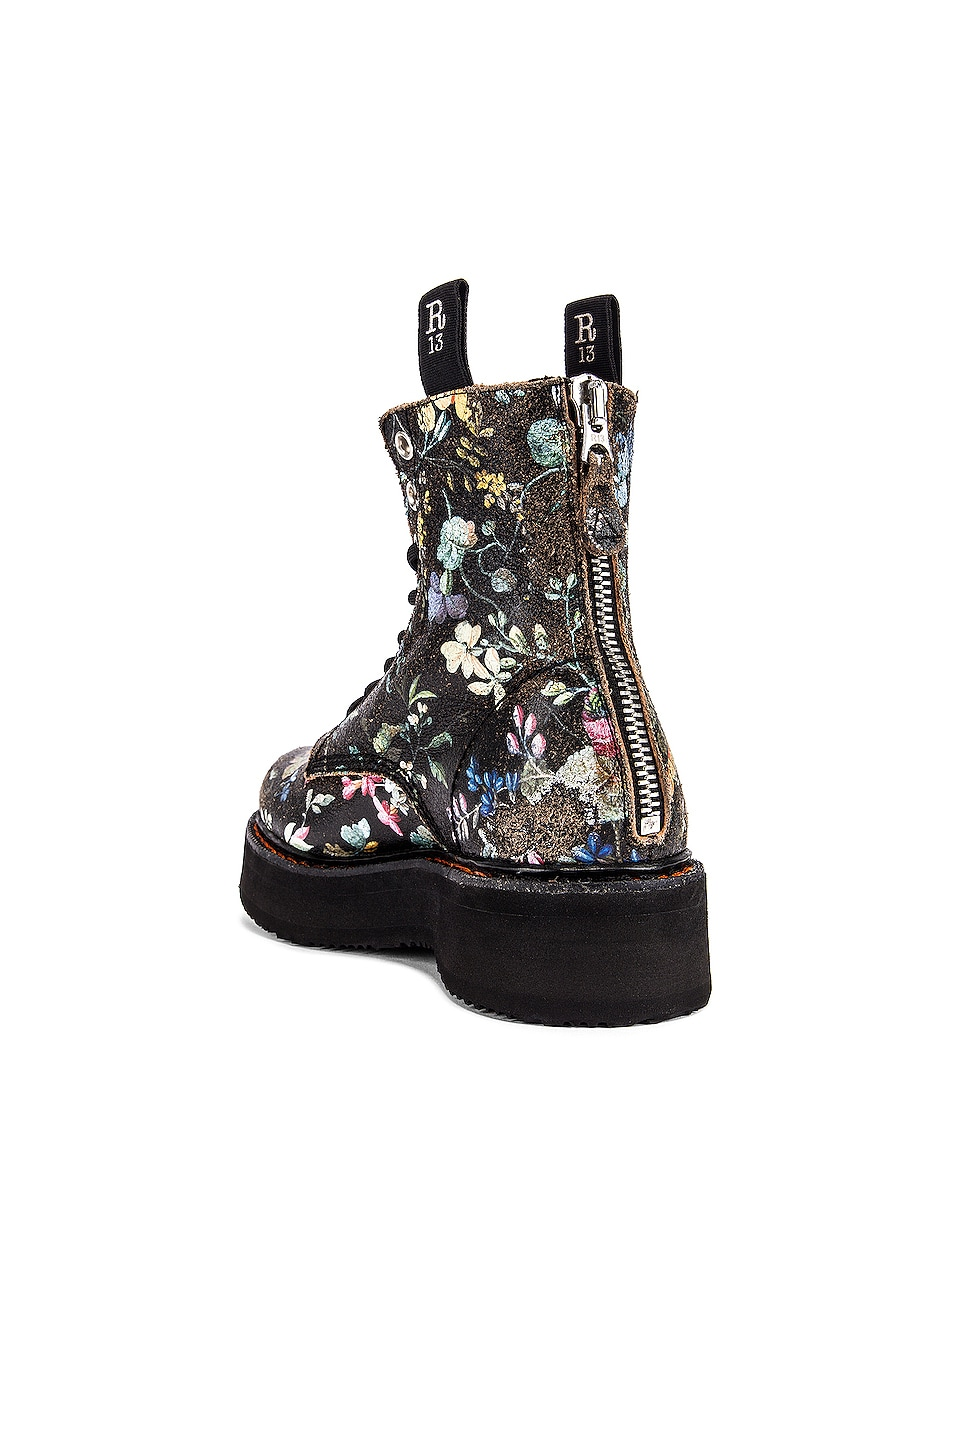 Image 3 of R13 Single Stacked Lace Up Boots in Cracked WK6 Floral